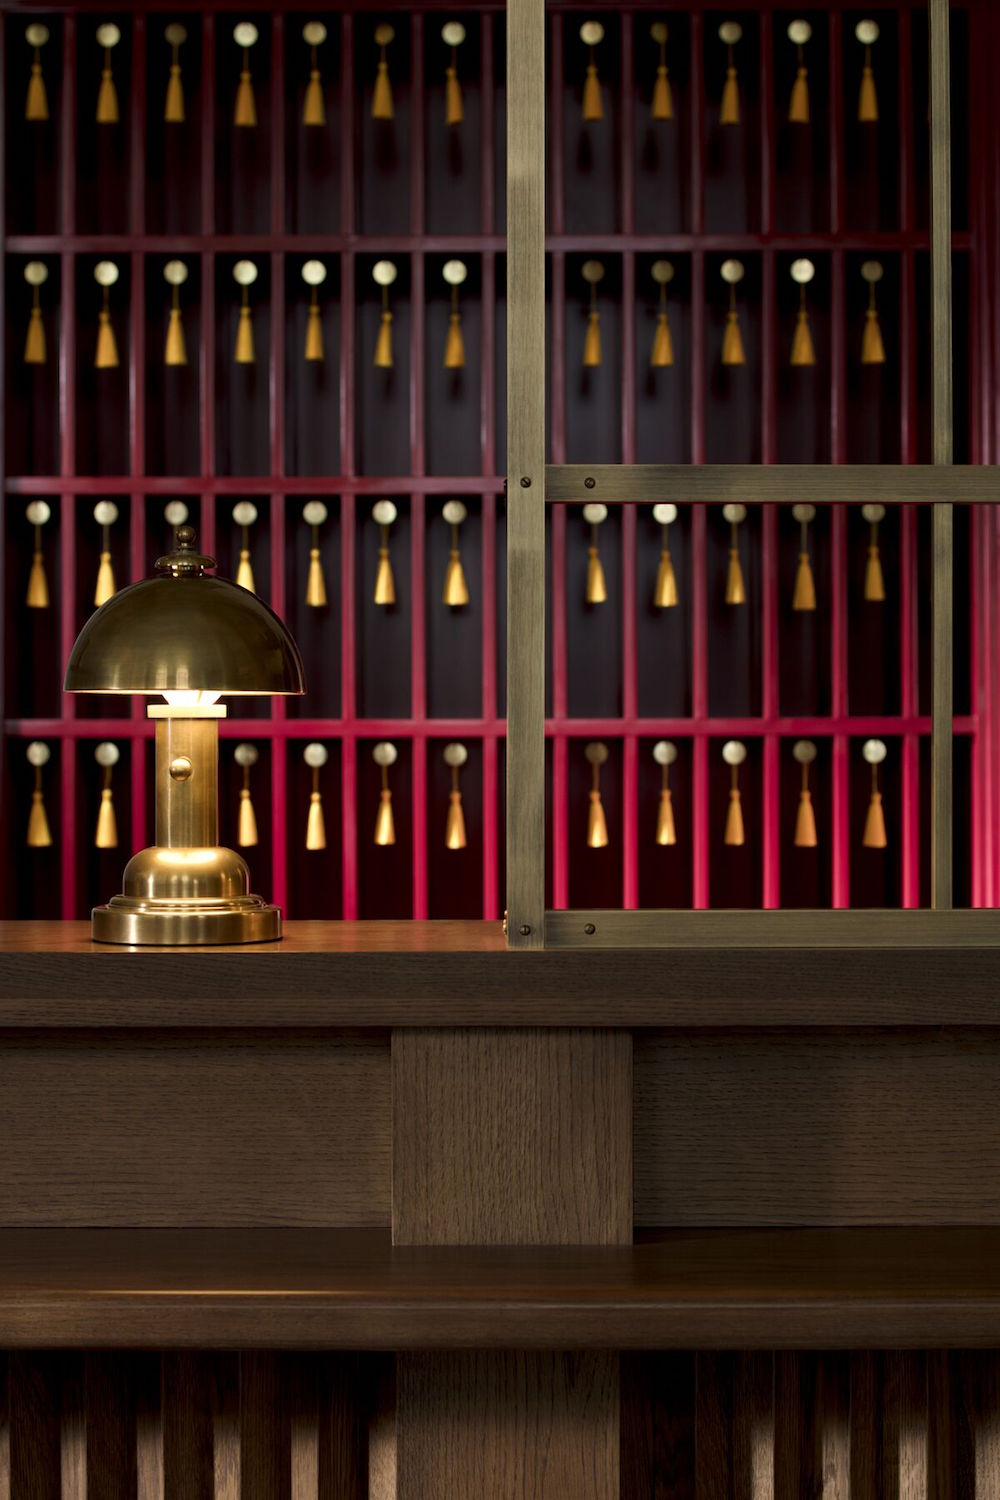 Image caption: A close-up of the timeless check-in desk. | Image credit: Riggs Washington D.C.